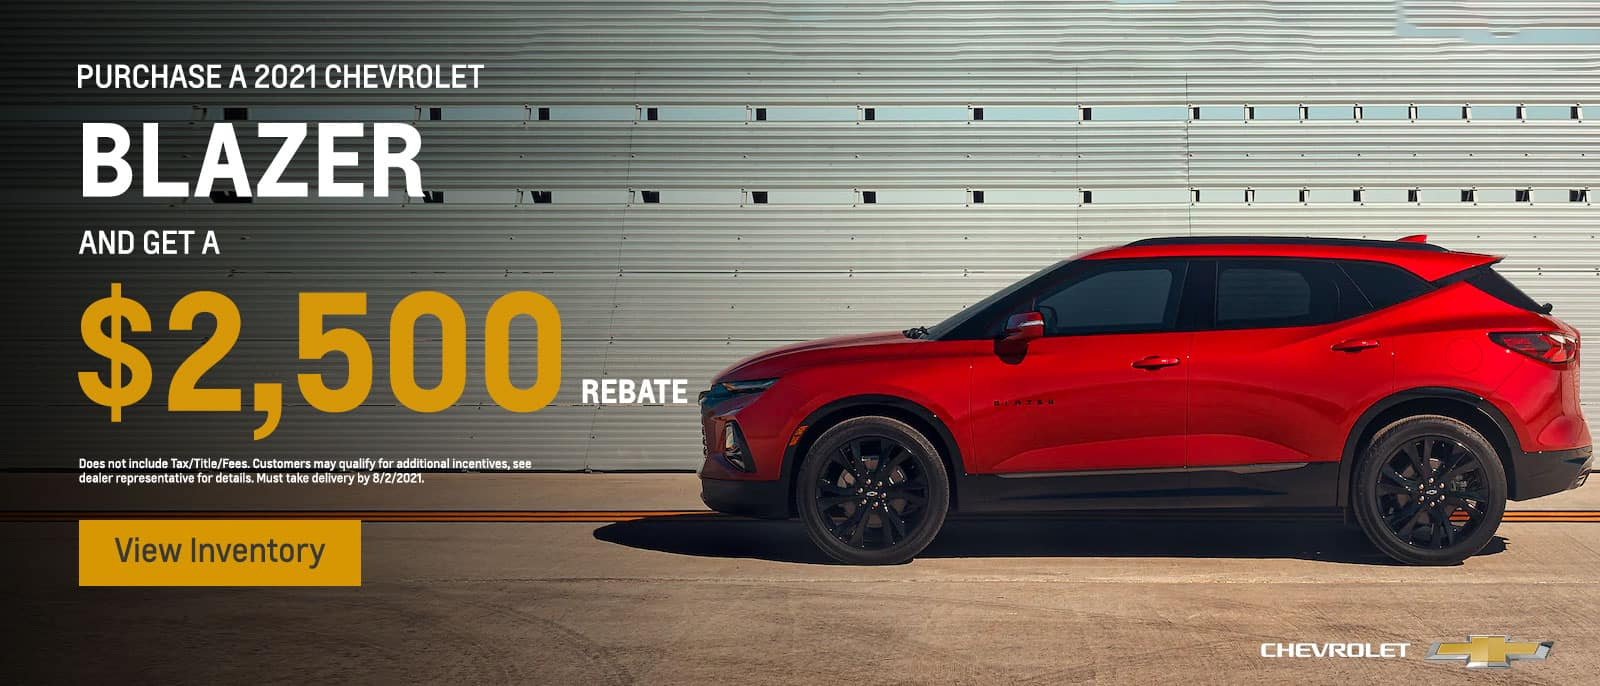 Purchase a 2021 Chevrolet Blazer and get a $2500 REBATE